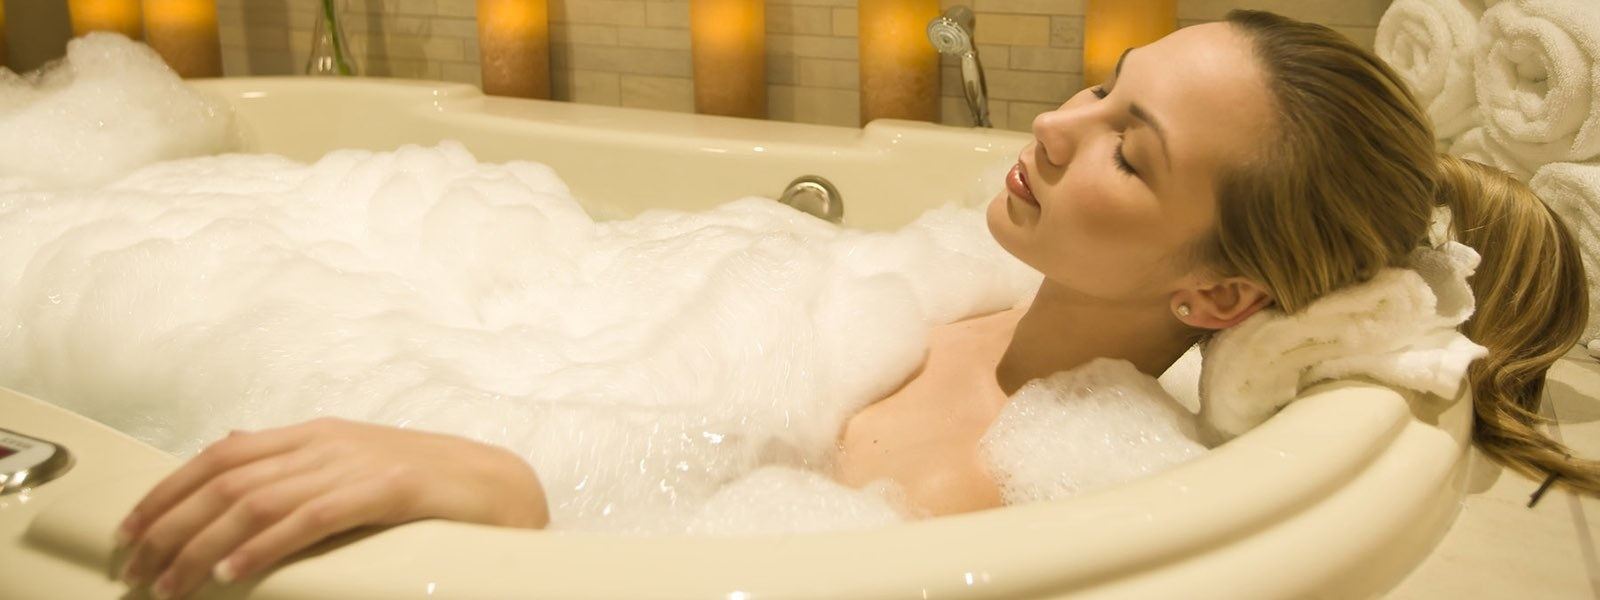 Woman relaxing in tub with bubbles